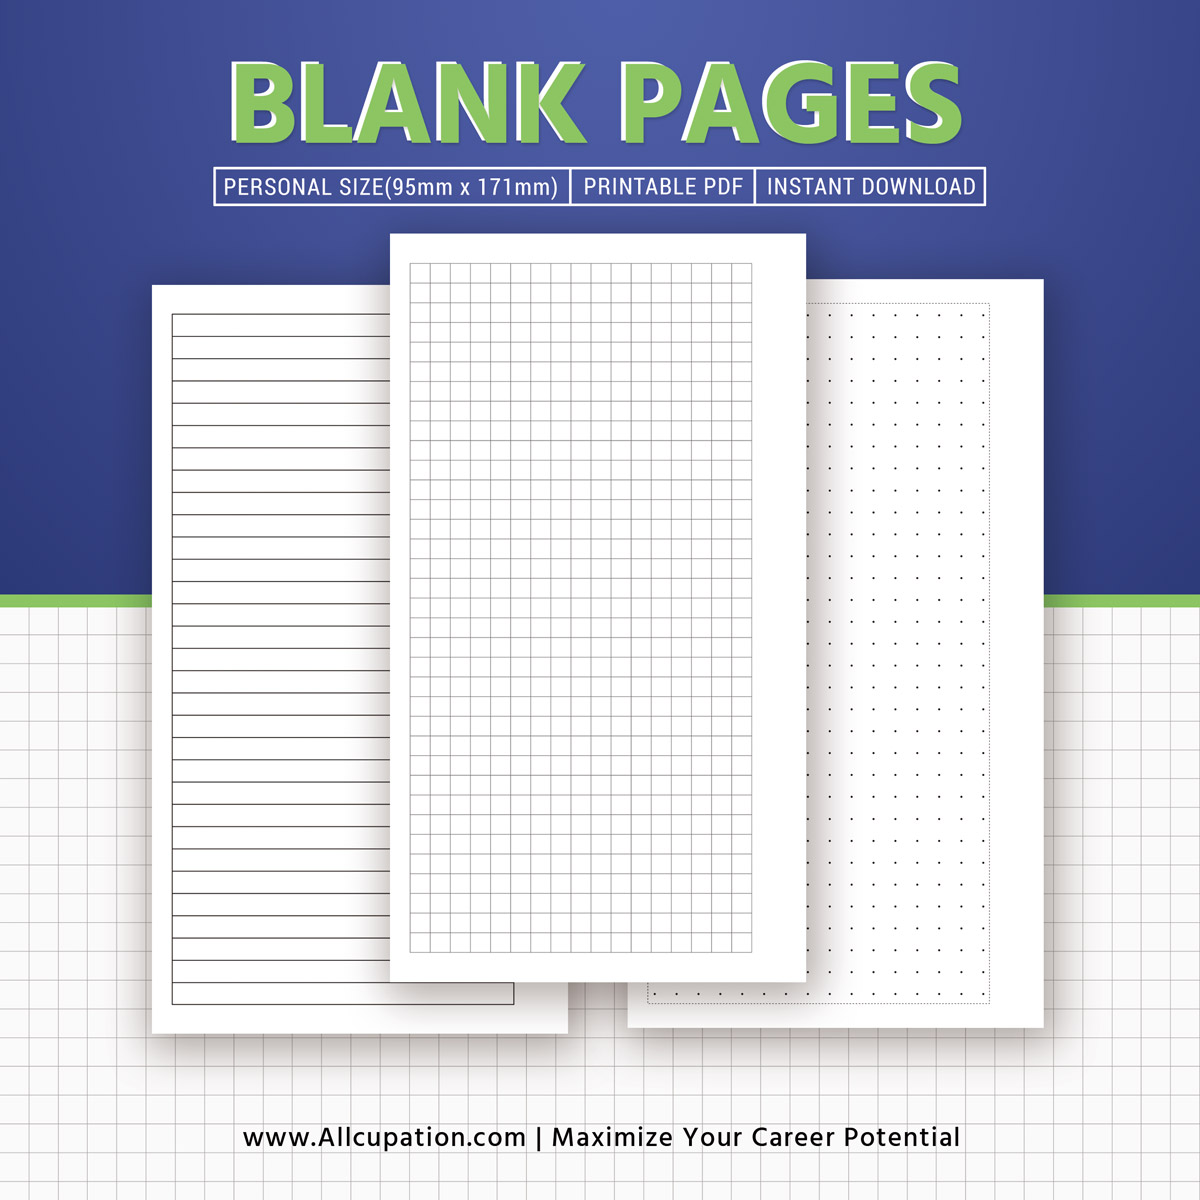 Printable Blank Pages Planner Pages Personal Size Inserts Binder Planner Design Best